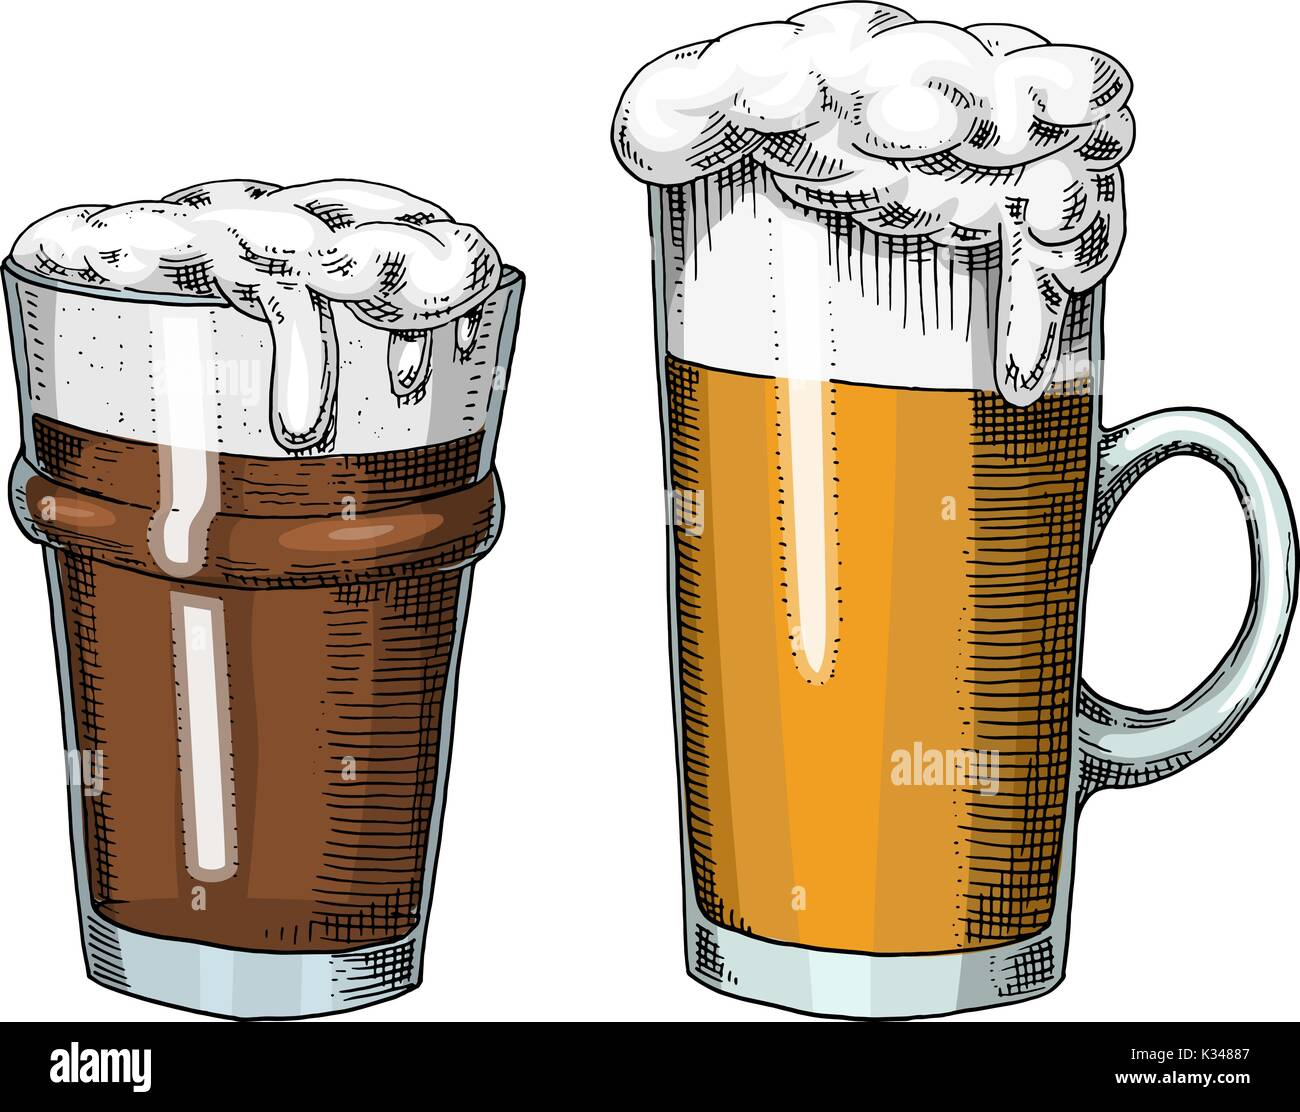 Beer glass, mug or bottle of oktoberfest. engraved in ink